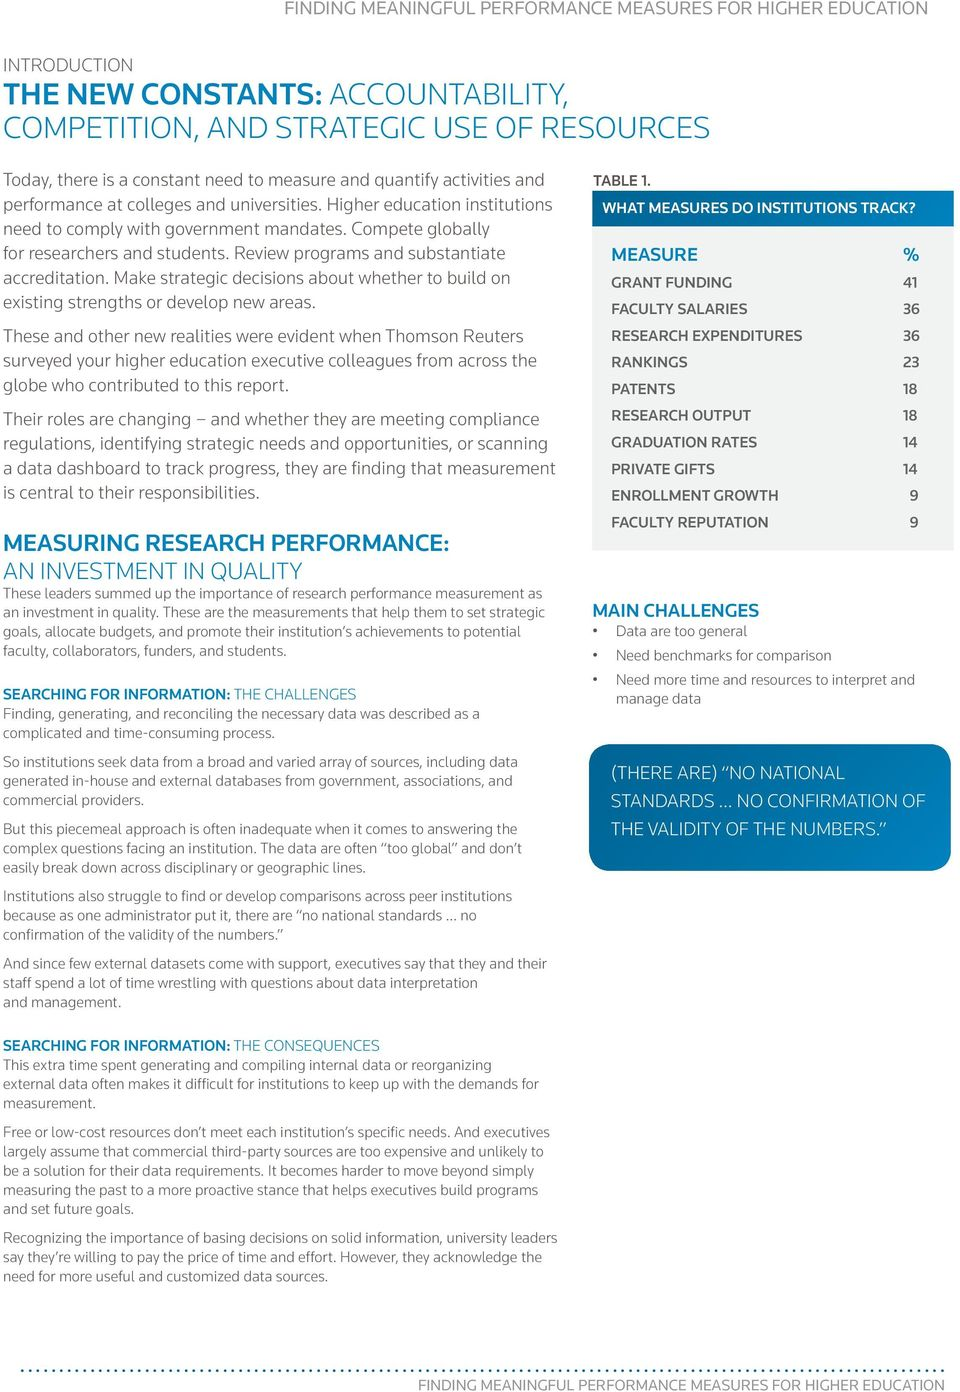 FINDING MEANINGFUL PERFORMANCE MEASURES FOR HIGHER EDUCATION